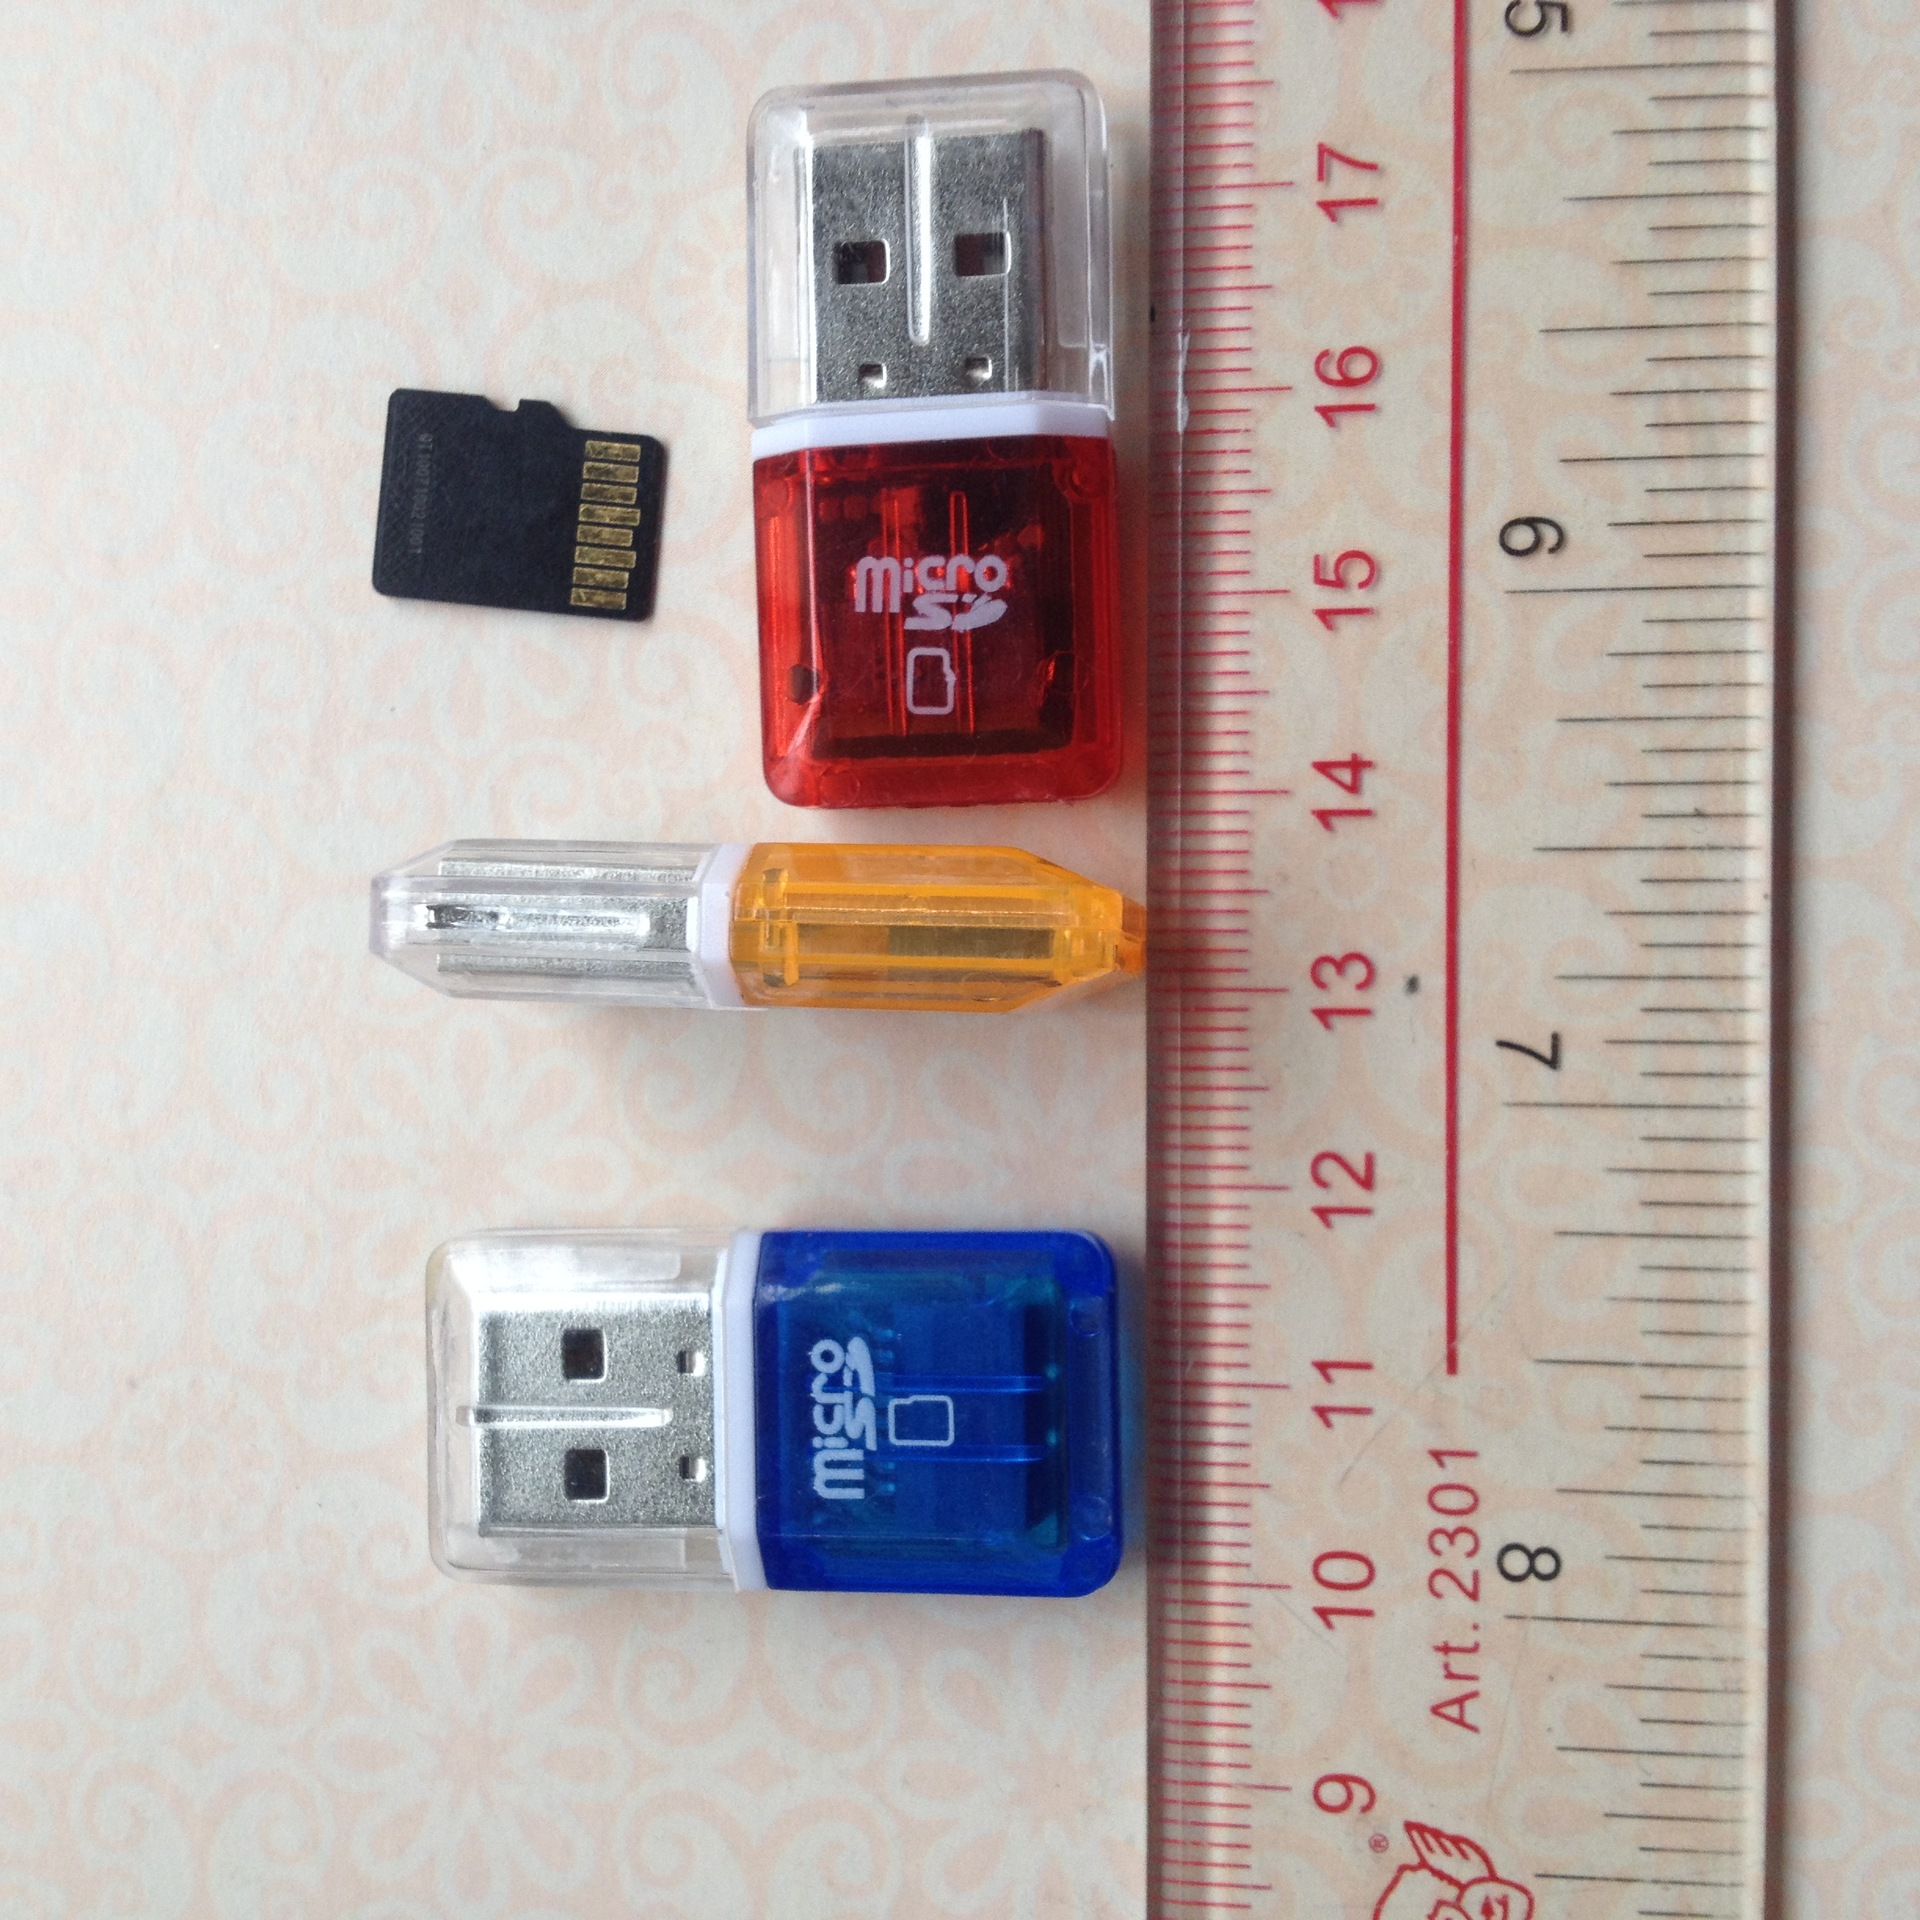 YOUKITTY Mini USB2.0 Card Reader Black TF Card Adapter Plug and Play Colourful Memory Card Reader for Micro-SD Card